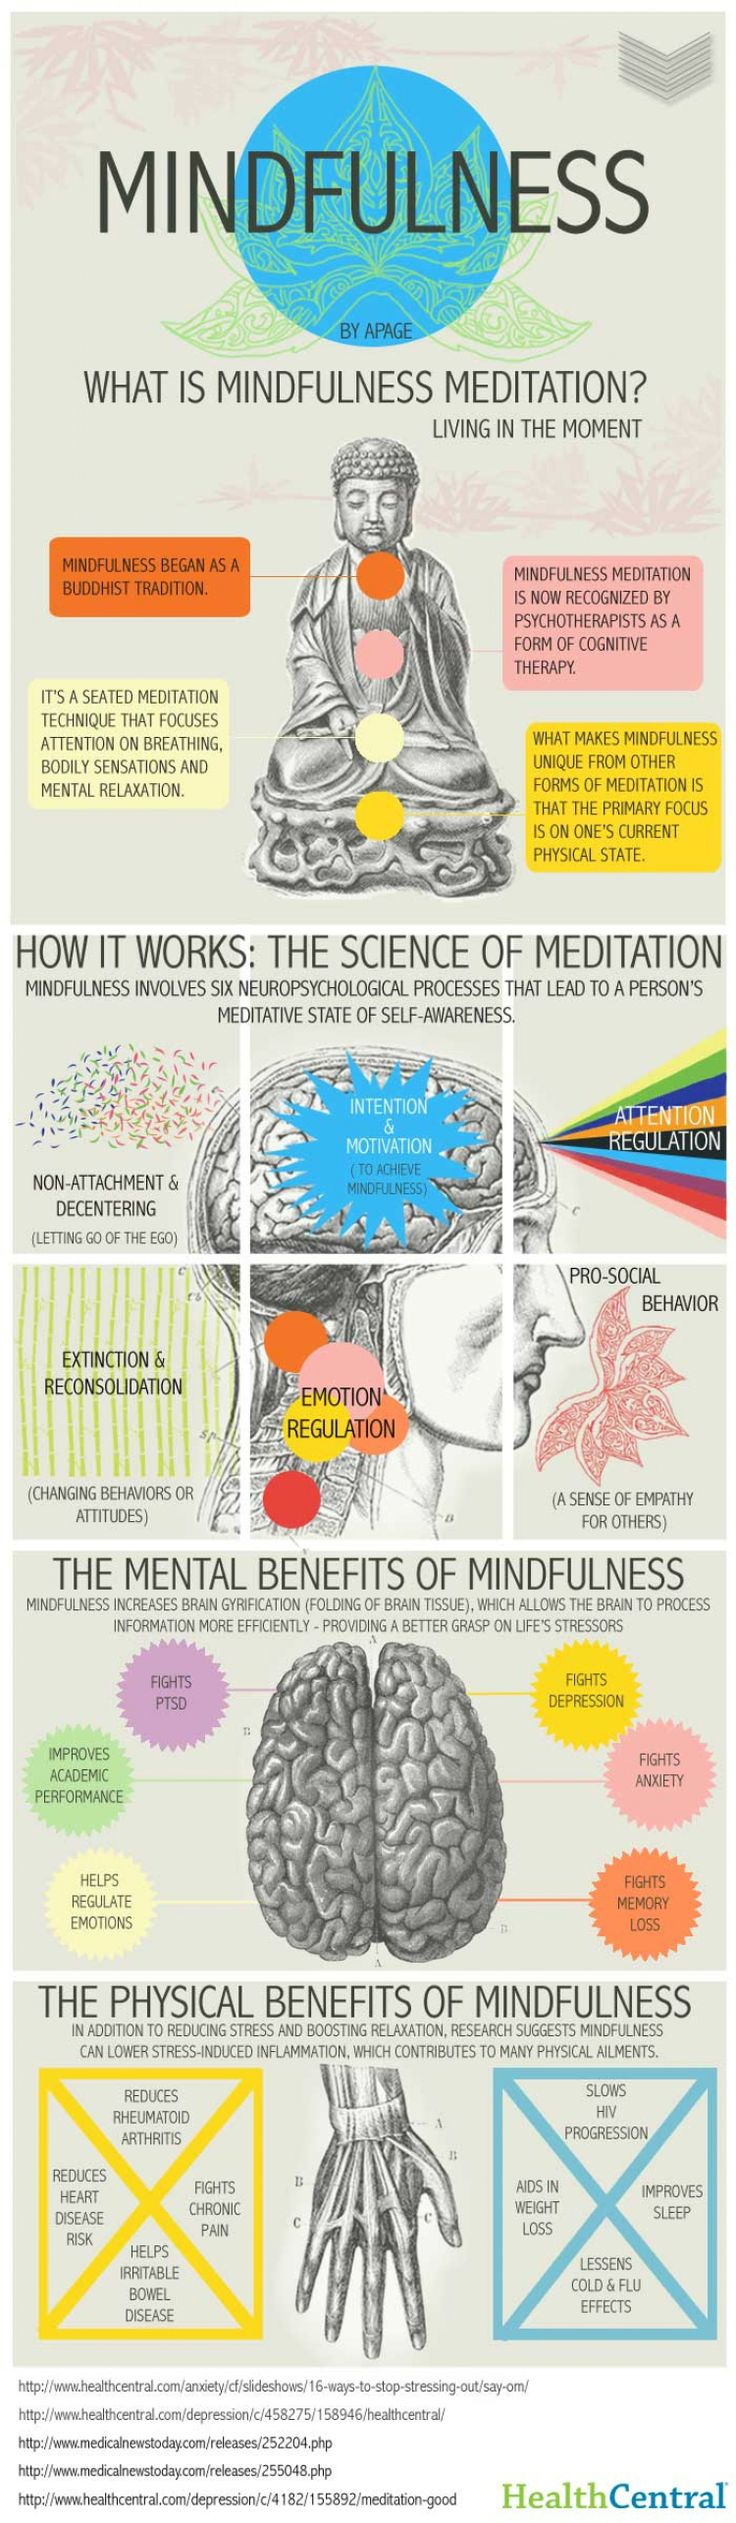 Why Should You Practice Mindfulness?